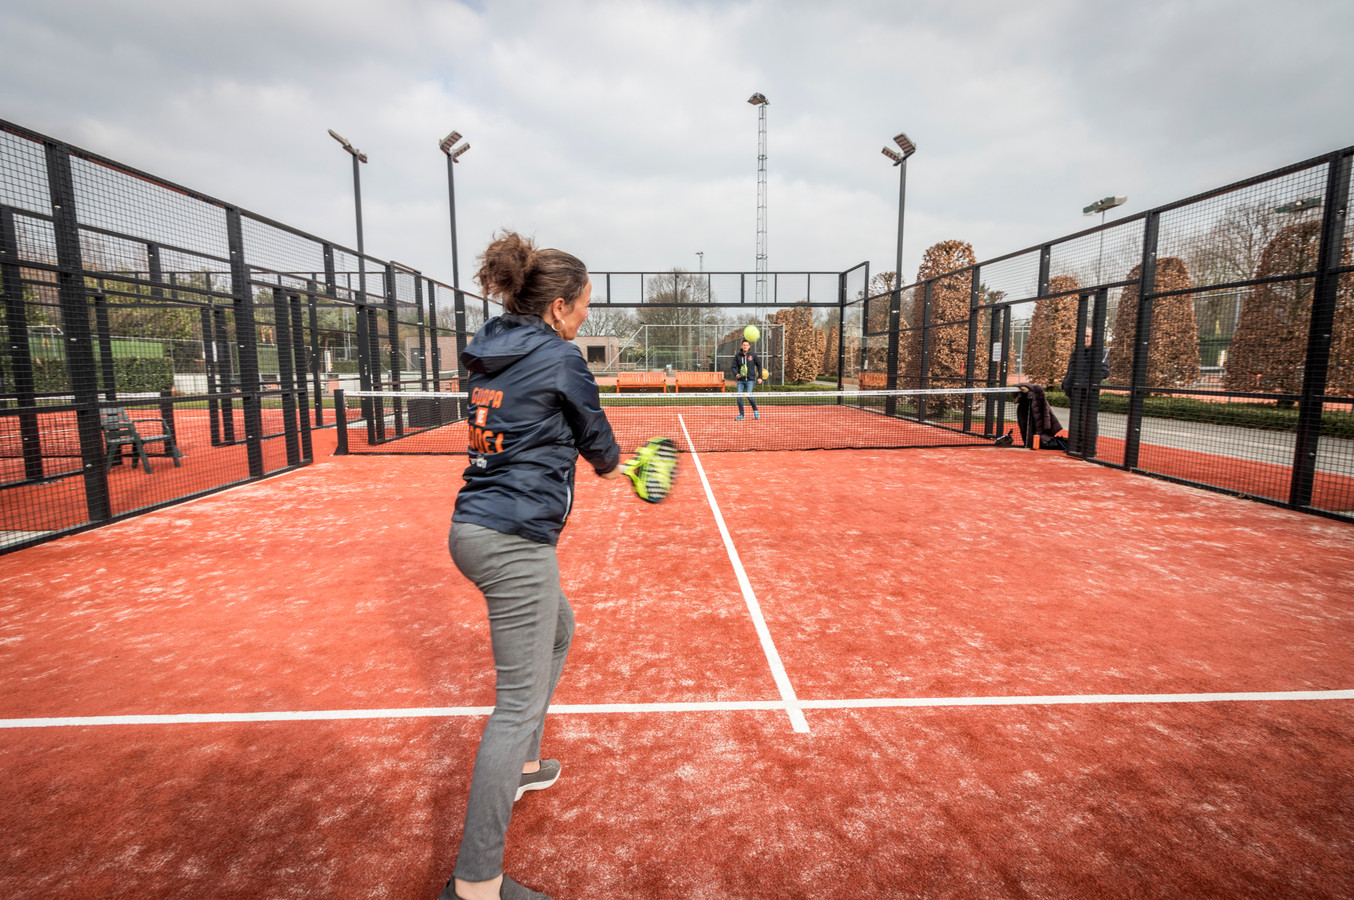 Padel is een sport in opkomst.